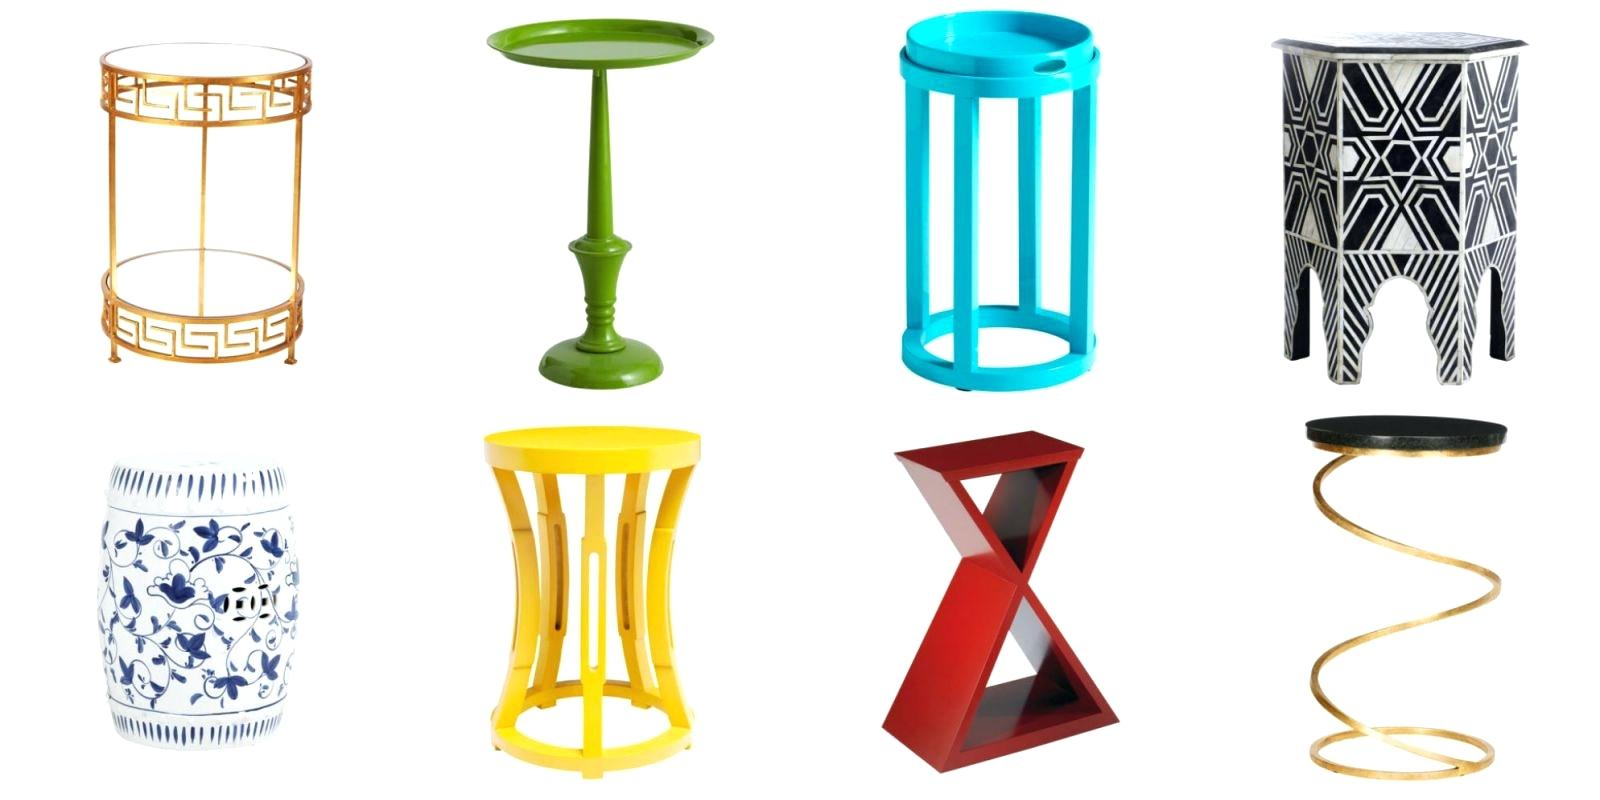 small accent table tables living room modern sofa side its decor unfinished furniture legs home accents brand black lamp yellow marble top with drawer target wood folding patio